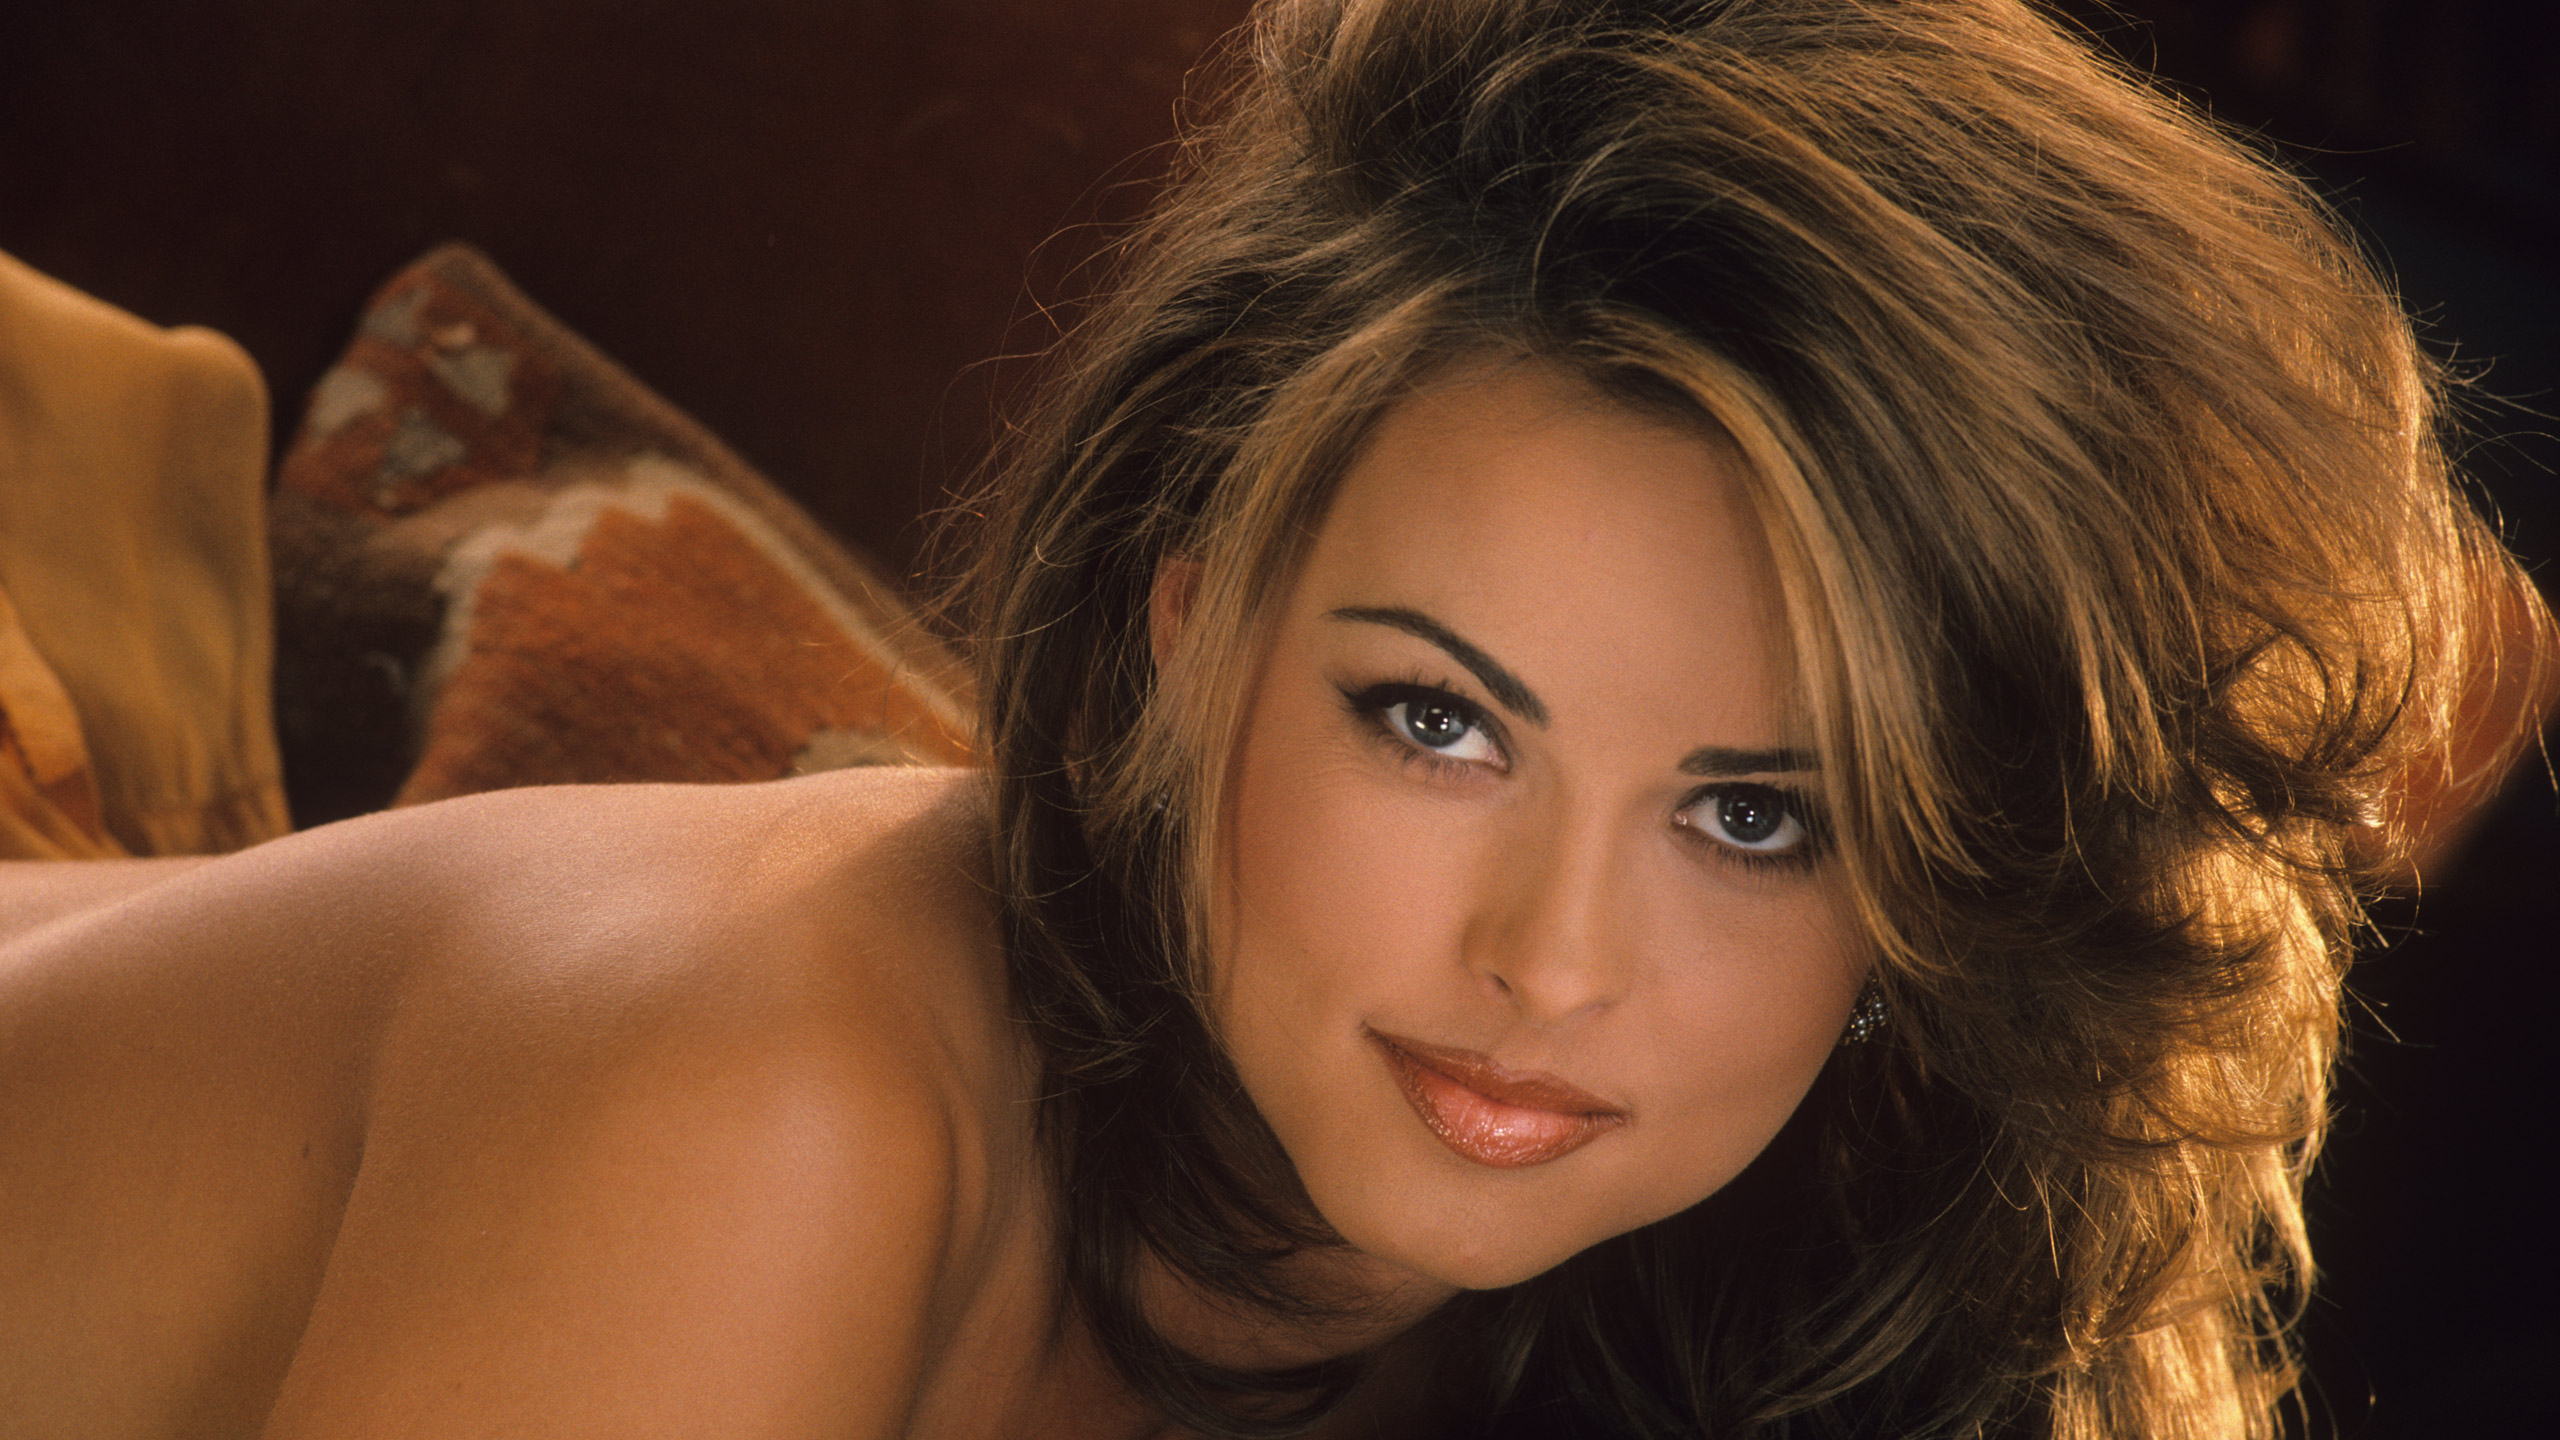 Donald Trump saw his then25yearold daughter in Karen McDougal when he allegedly wooed the Playboy Playmate in 2006